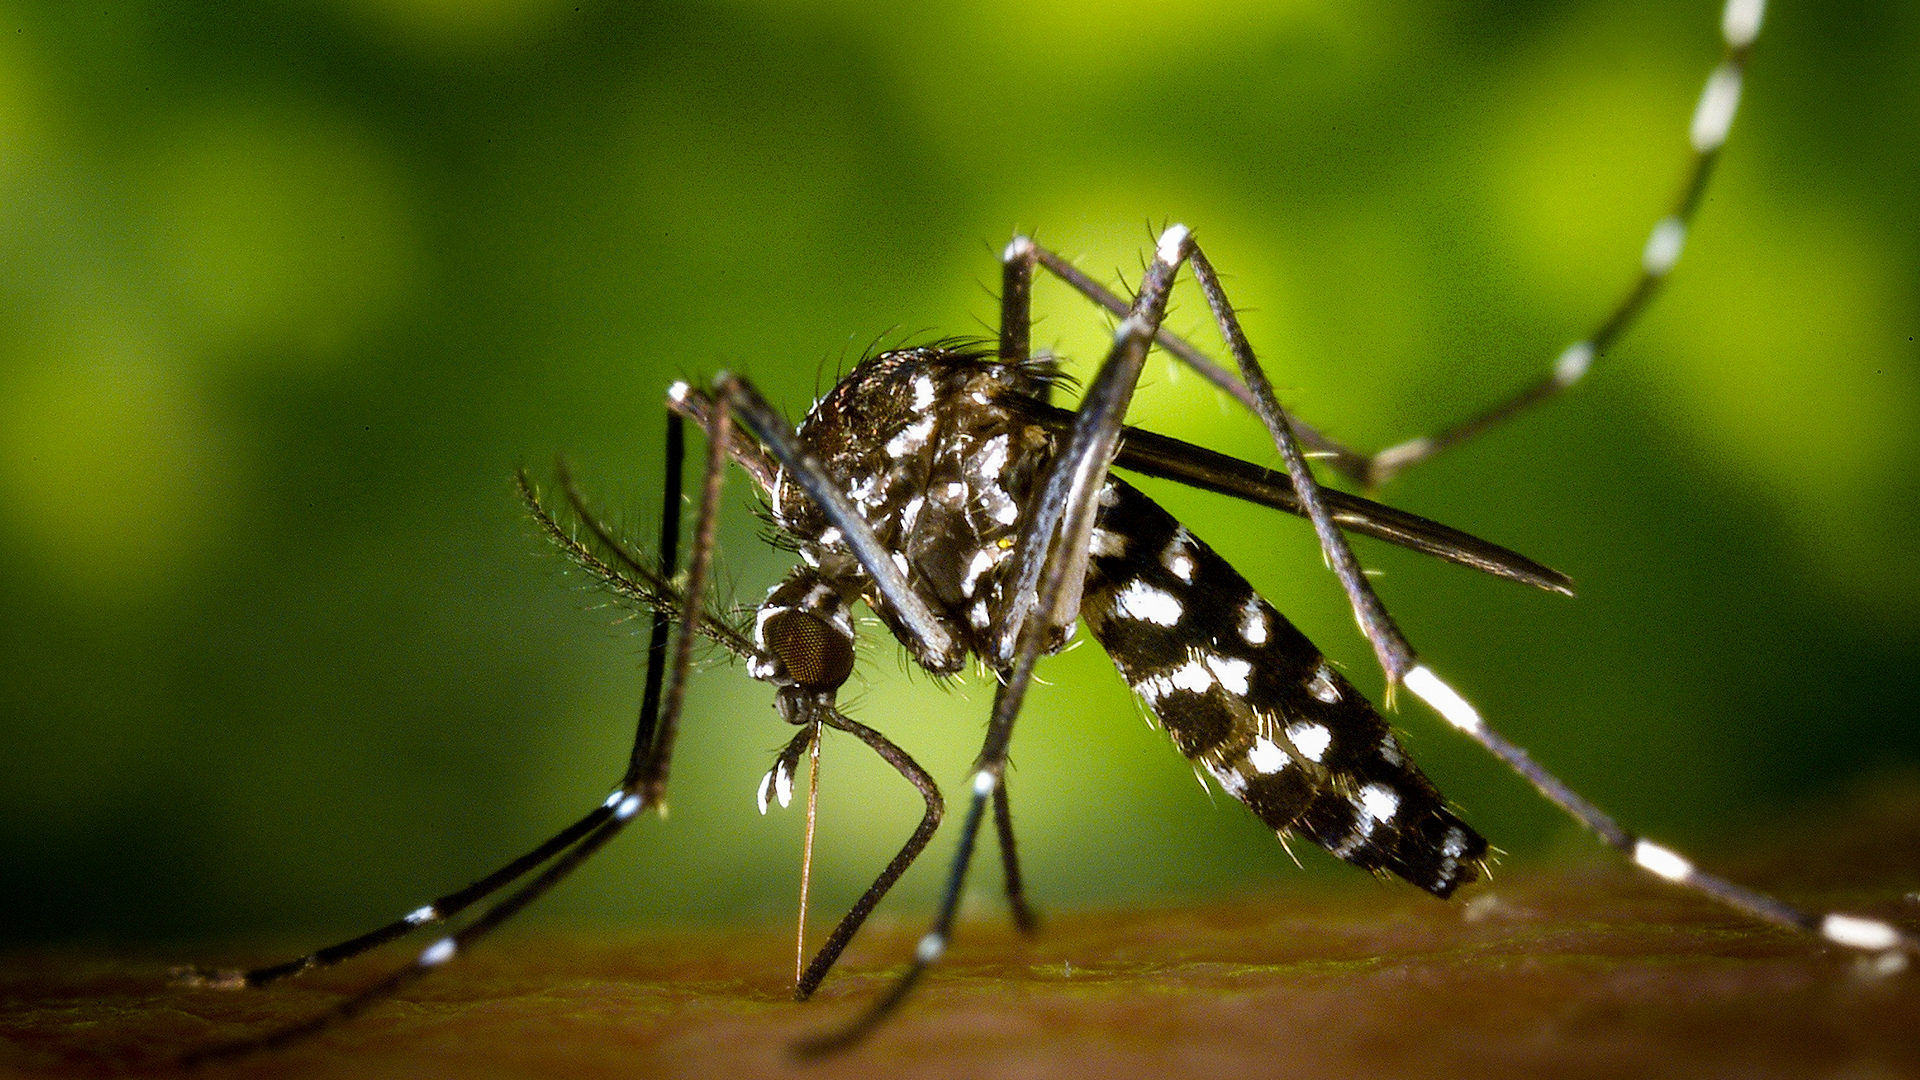 Researchers Determine How Malaria Parasite Defends Itself From Fever